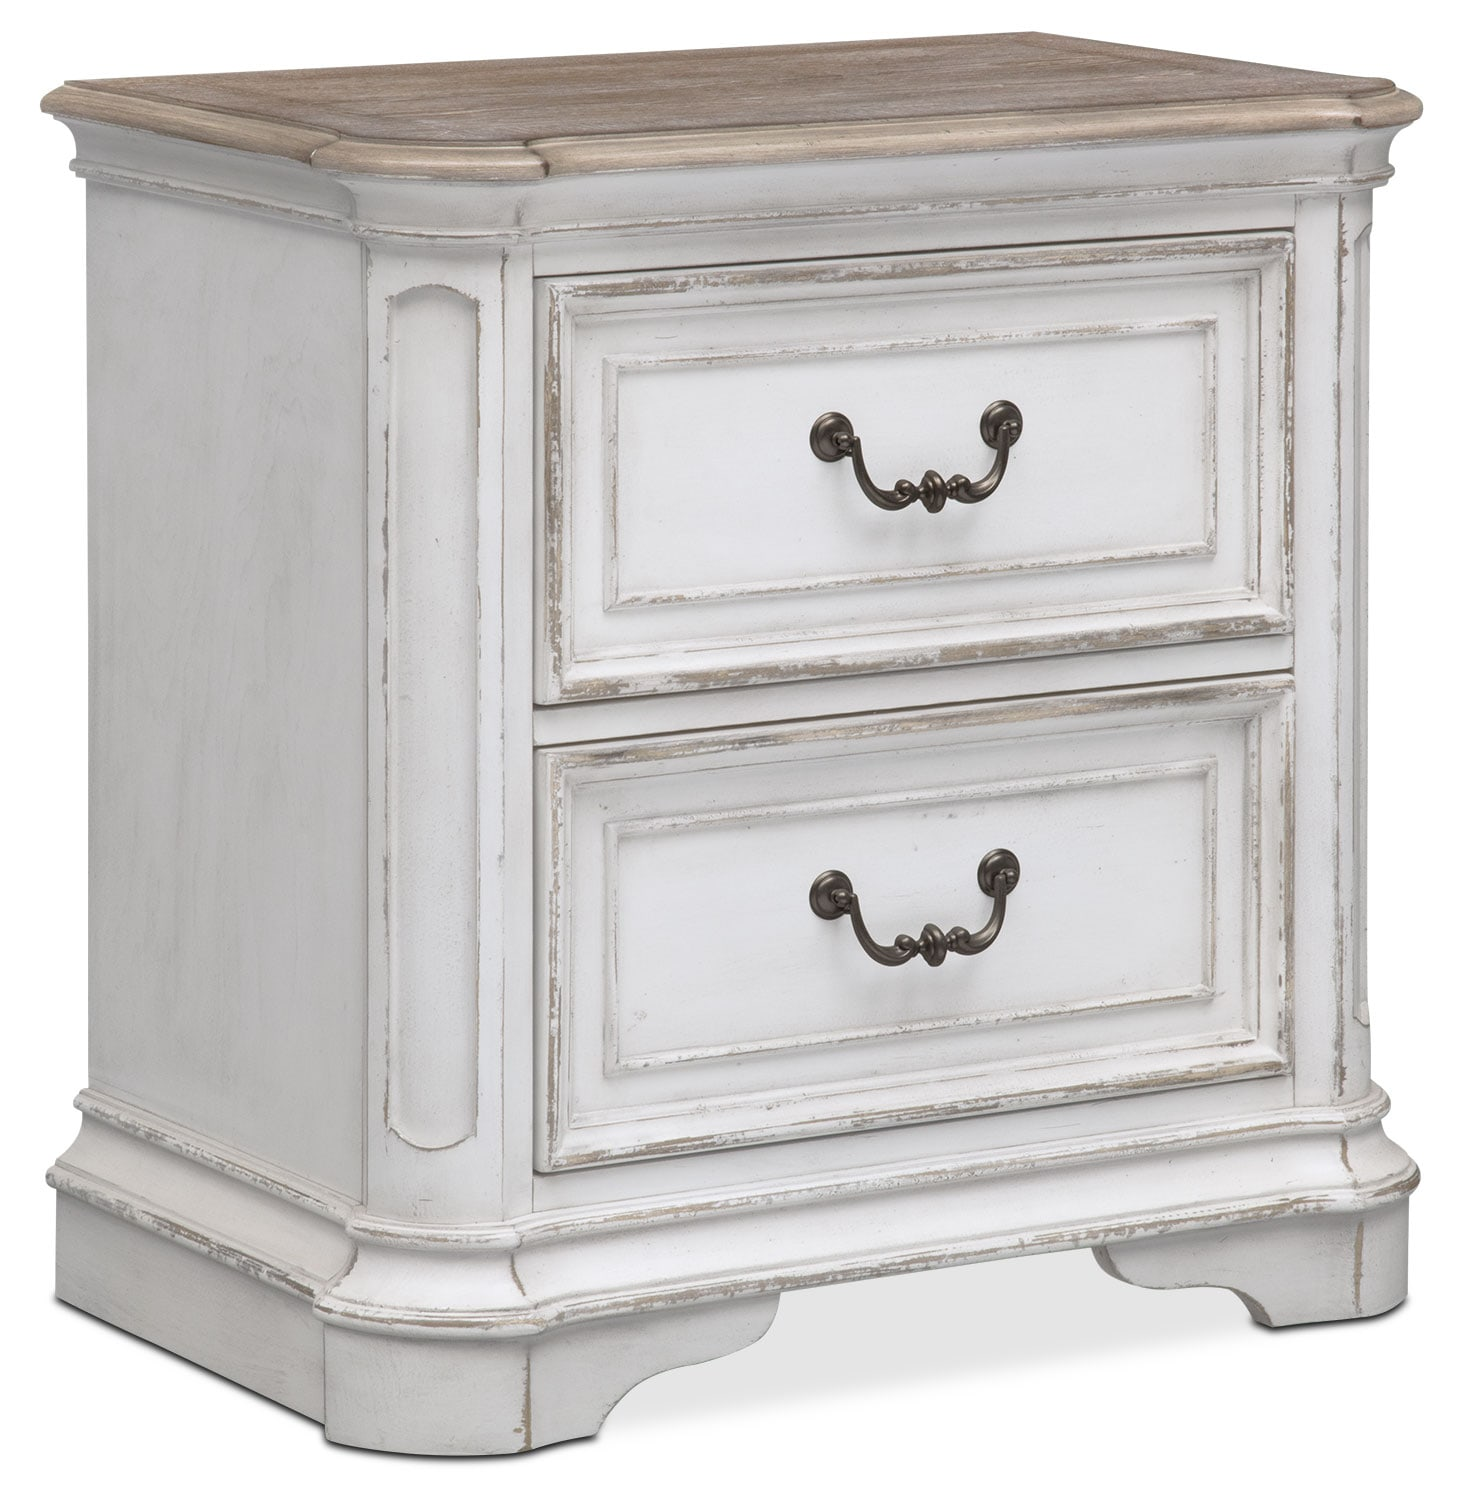 Marcelle Nightstand - Vintage White